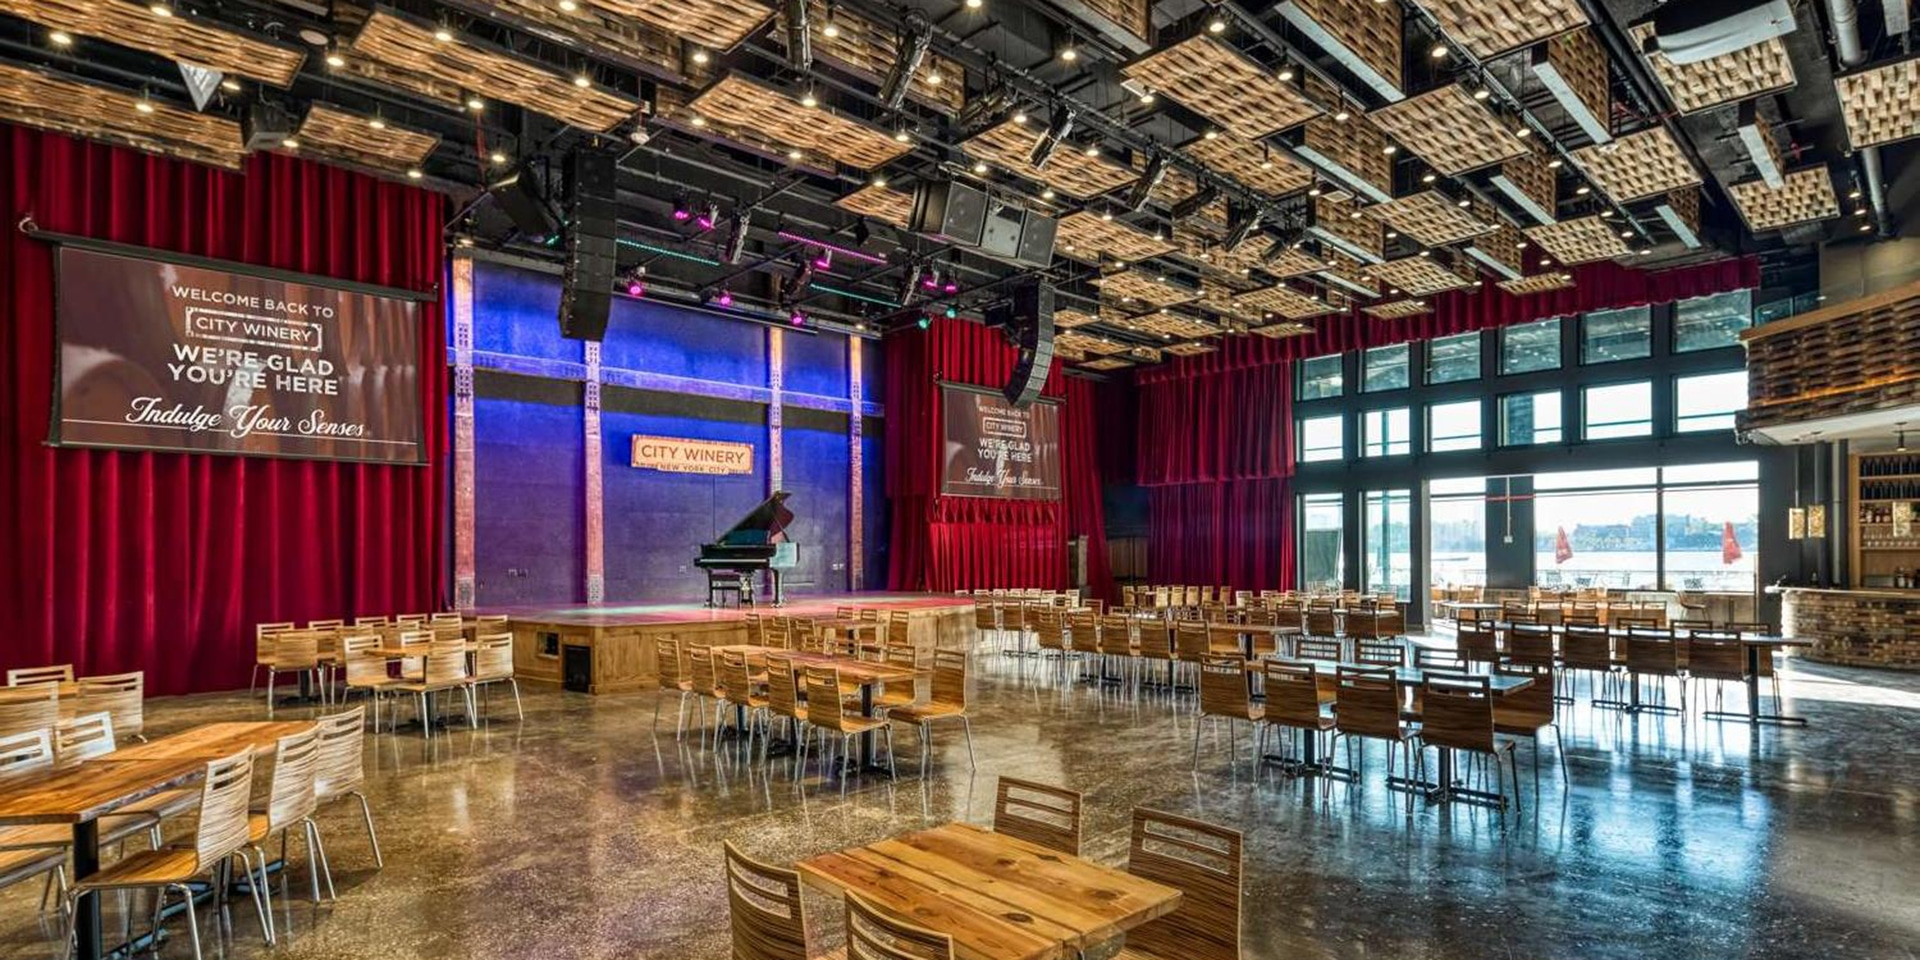 City Winery NYC Is Ready for Its Close-Up After 18 Long Months